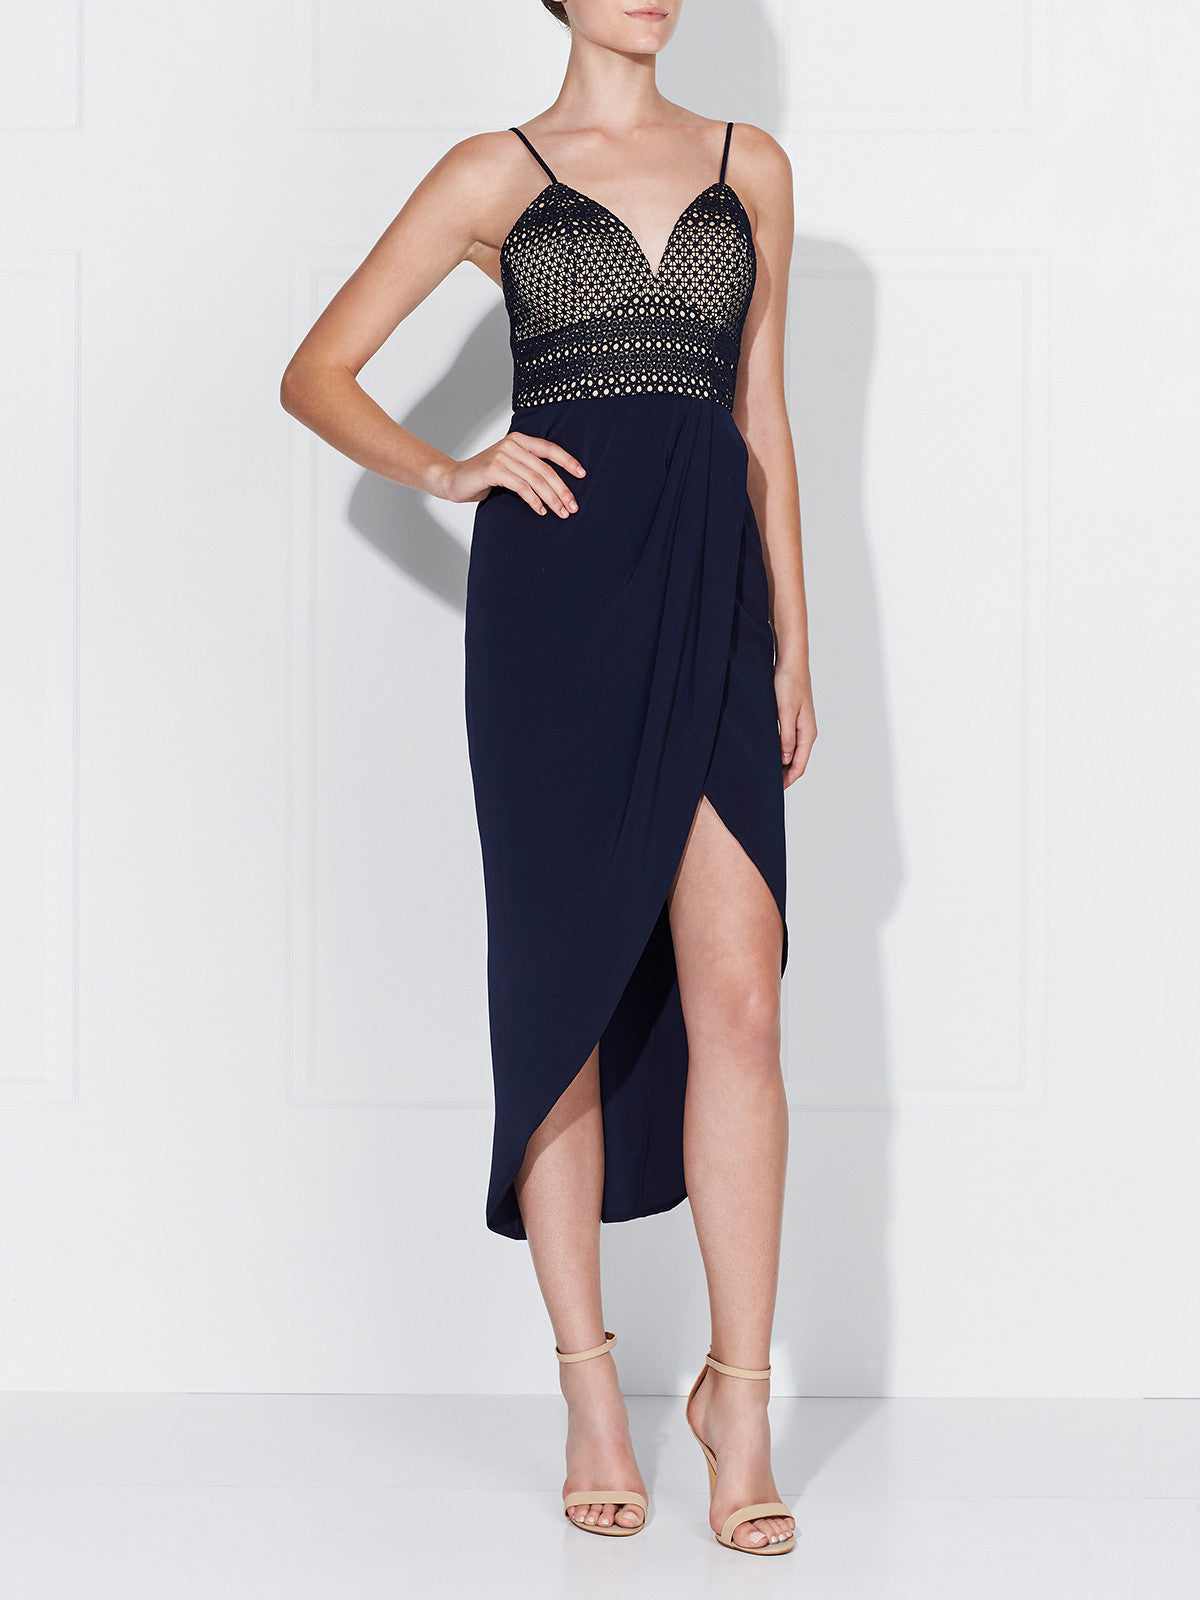 AZURA DRESS- NAVY